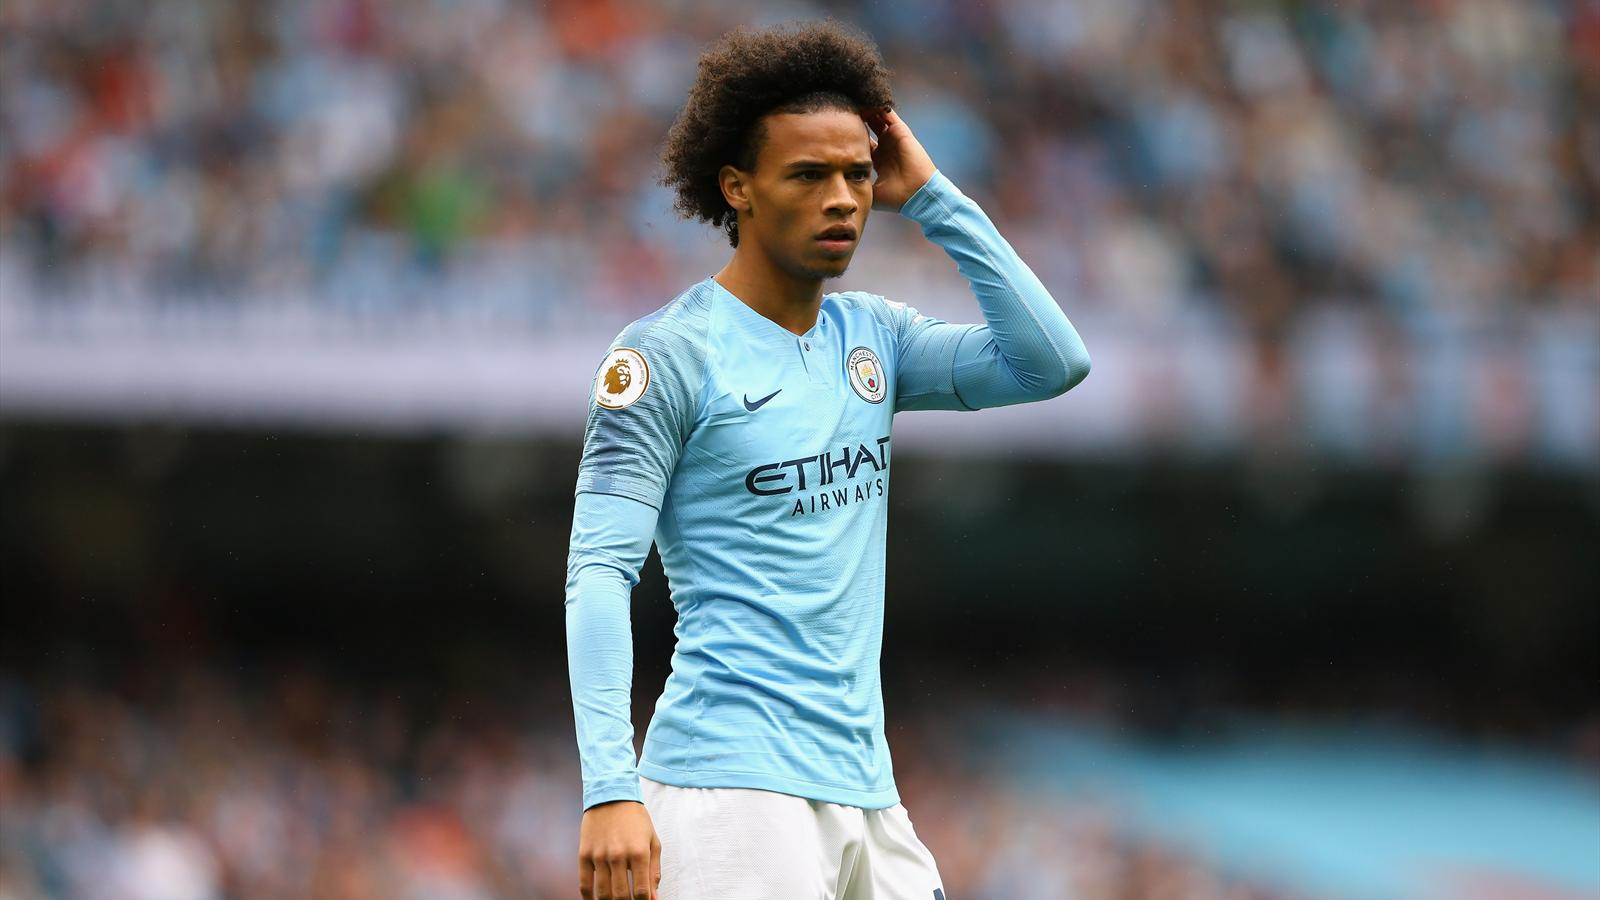 Leroy Sane dropped from City squad due to poor attitude - reports - Premier League 2018-2019 ...